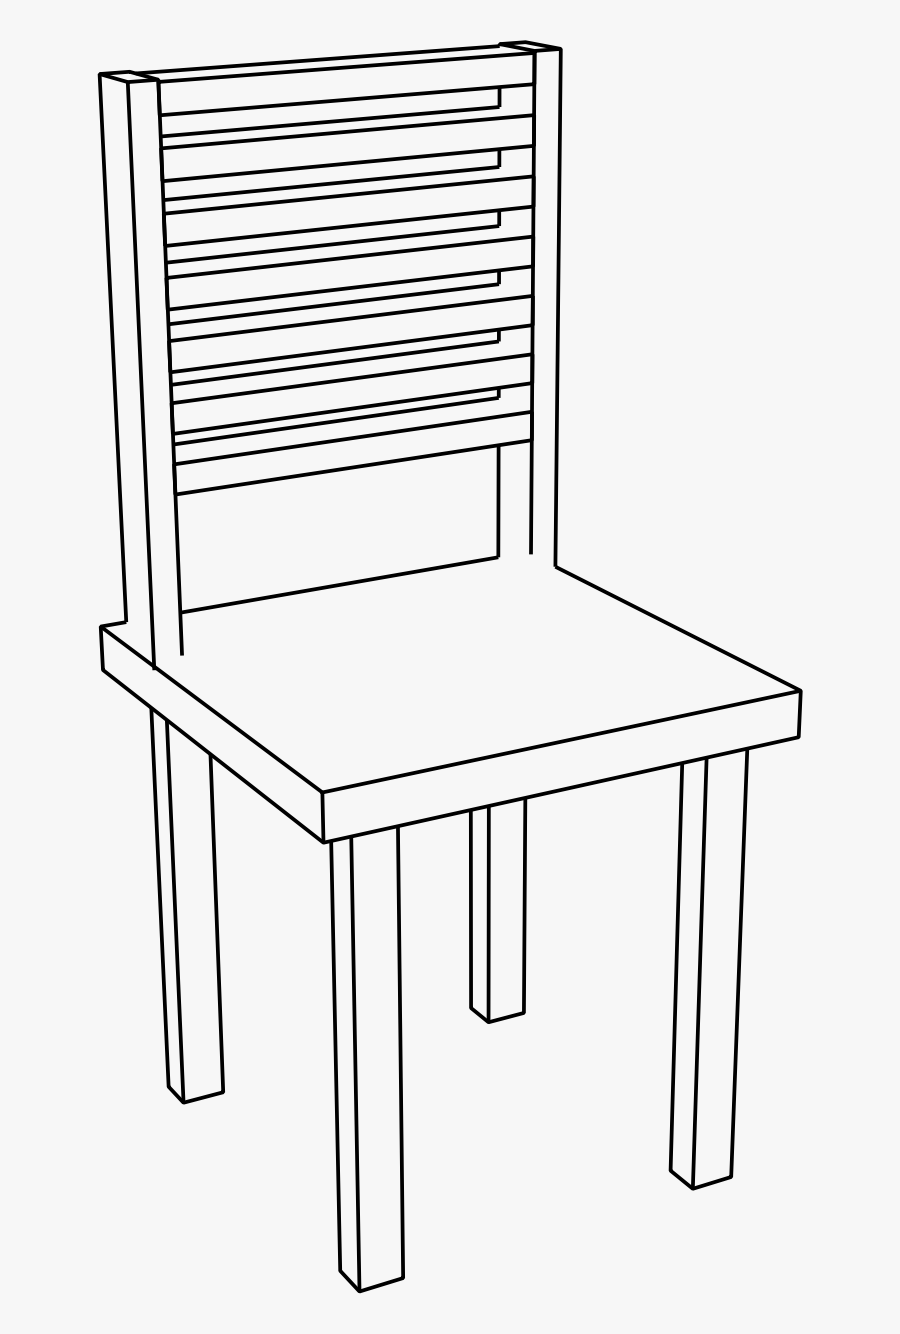 Chair Clipart Basic - Chair Png Black And White, Transparent Clipart